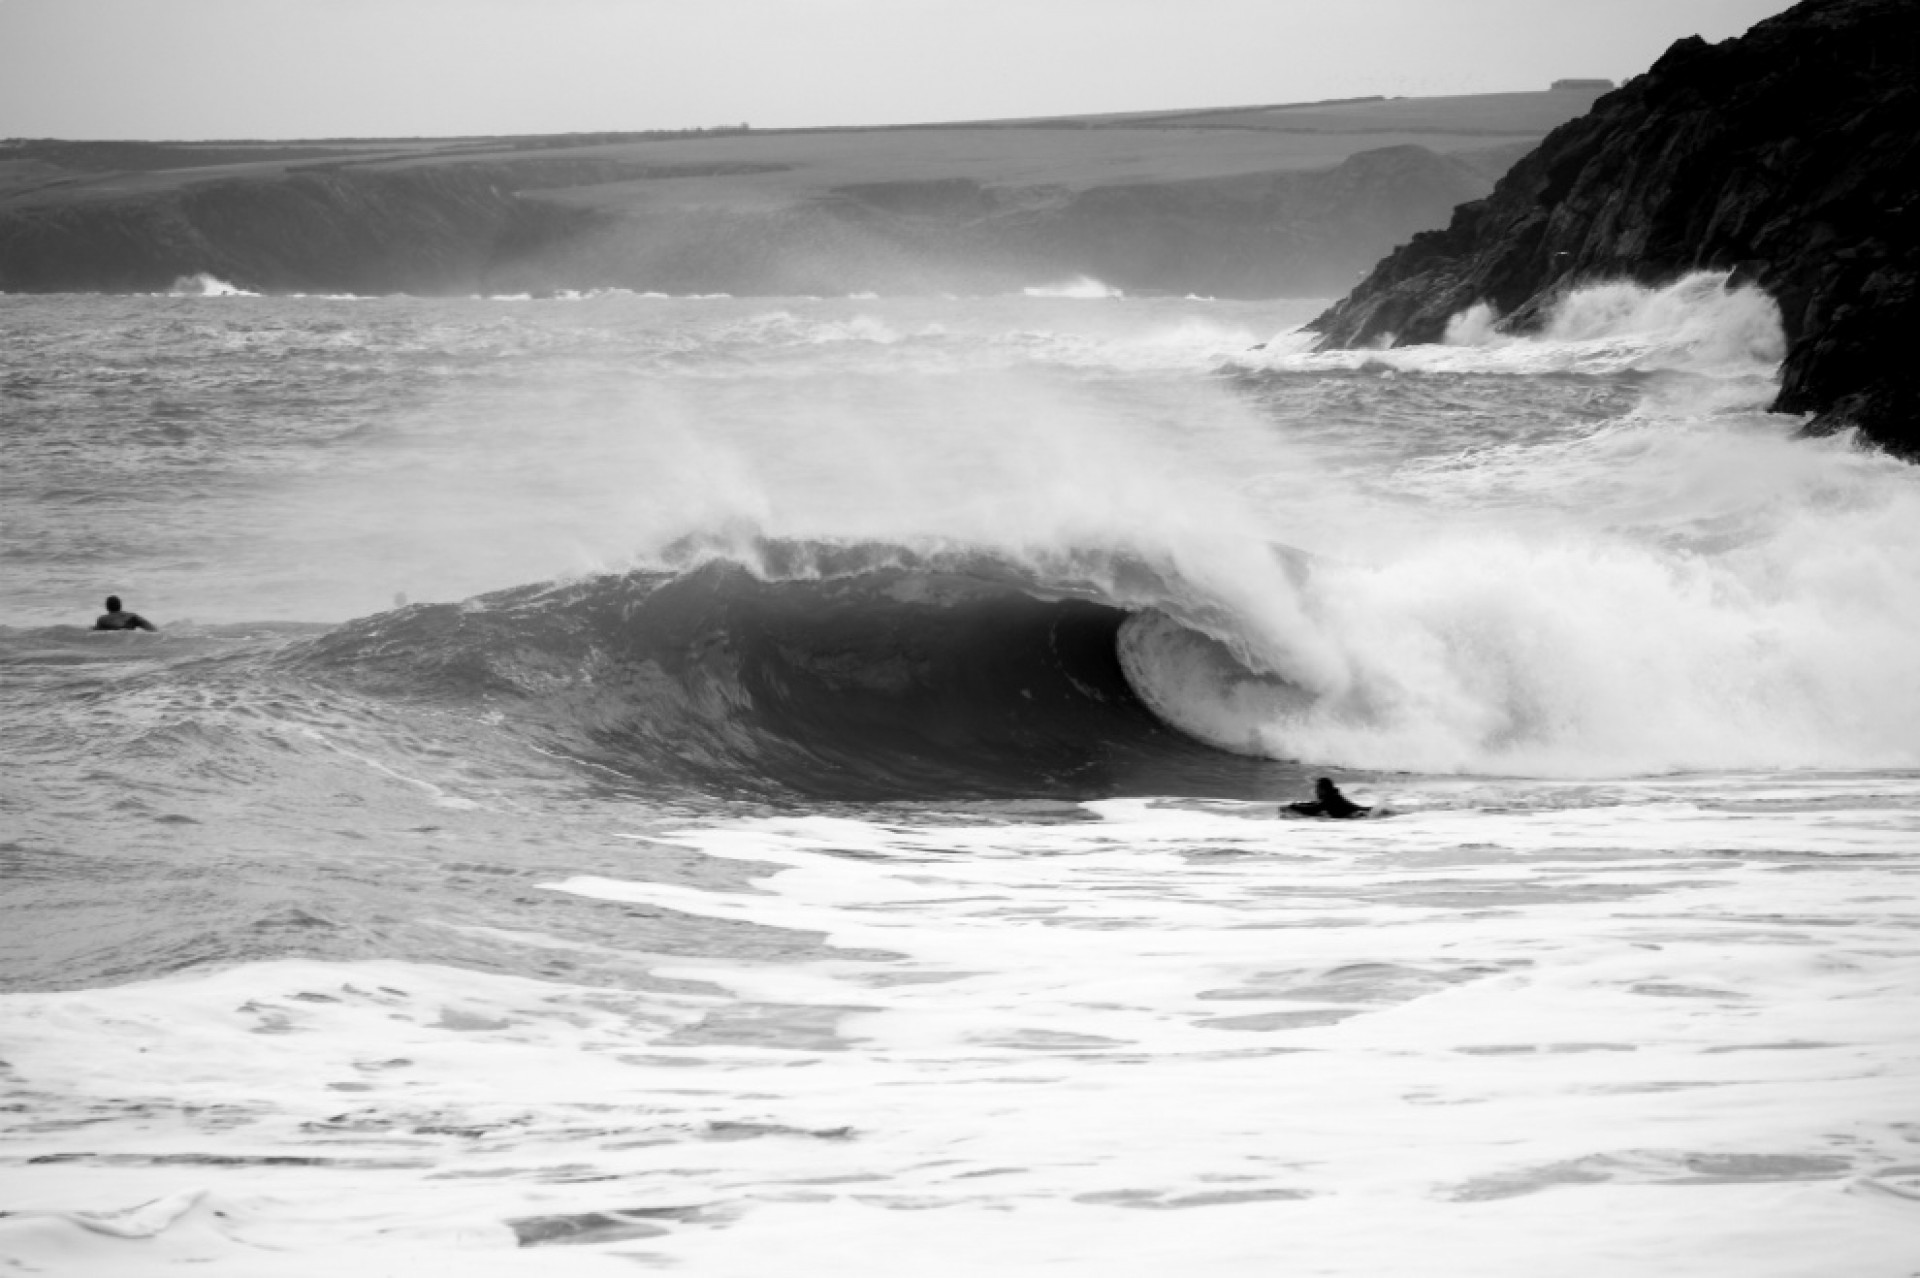 simunye's photo of Watergate Bay